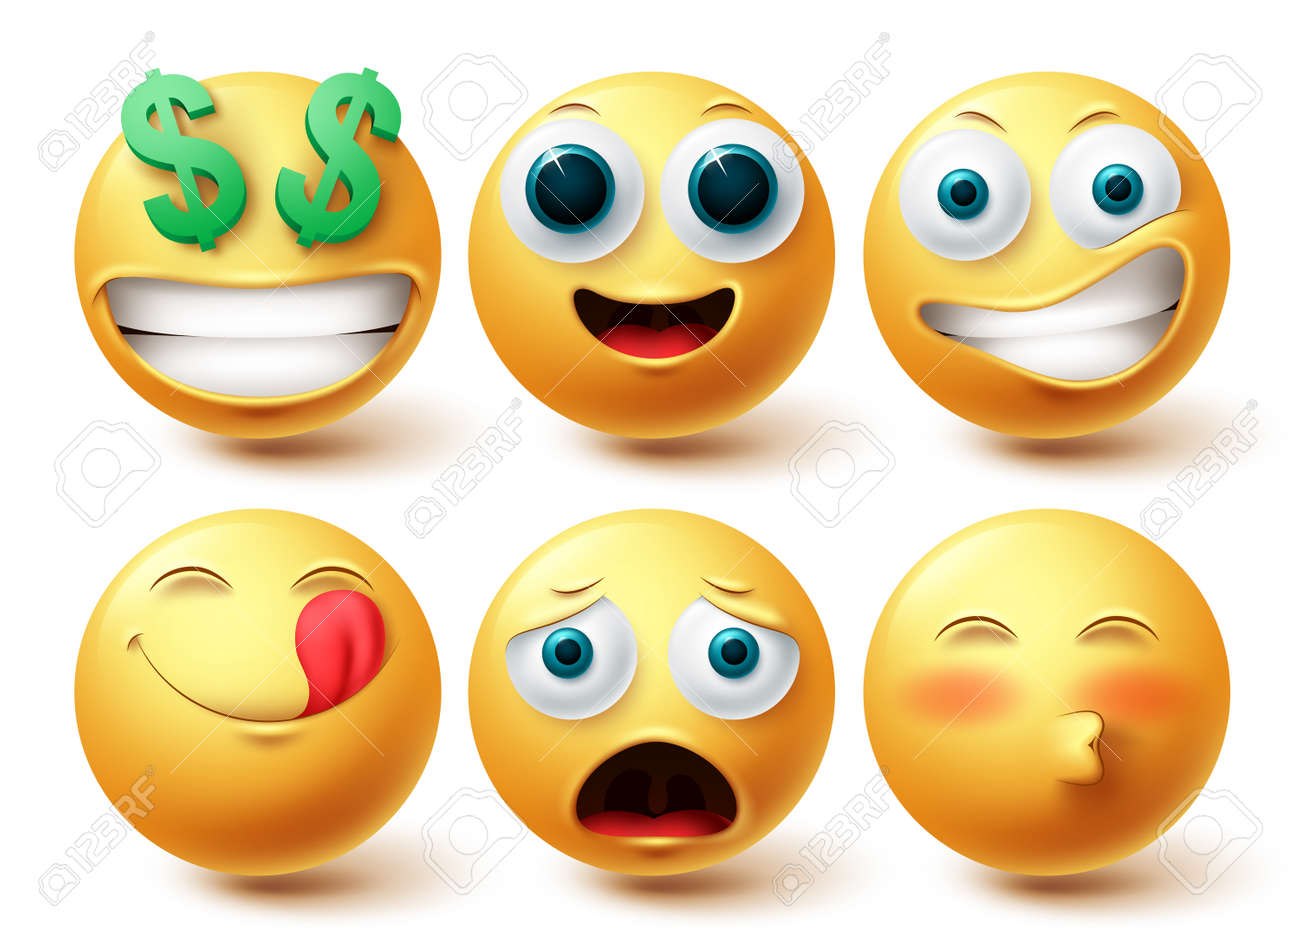 Emoji smiley vector set. Smileys emoticon happy collection facial expressions isolated in white background for graphic design elements. Vector illustration - 171747796